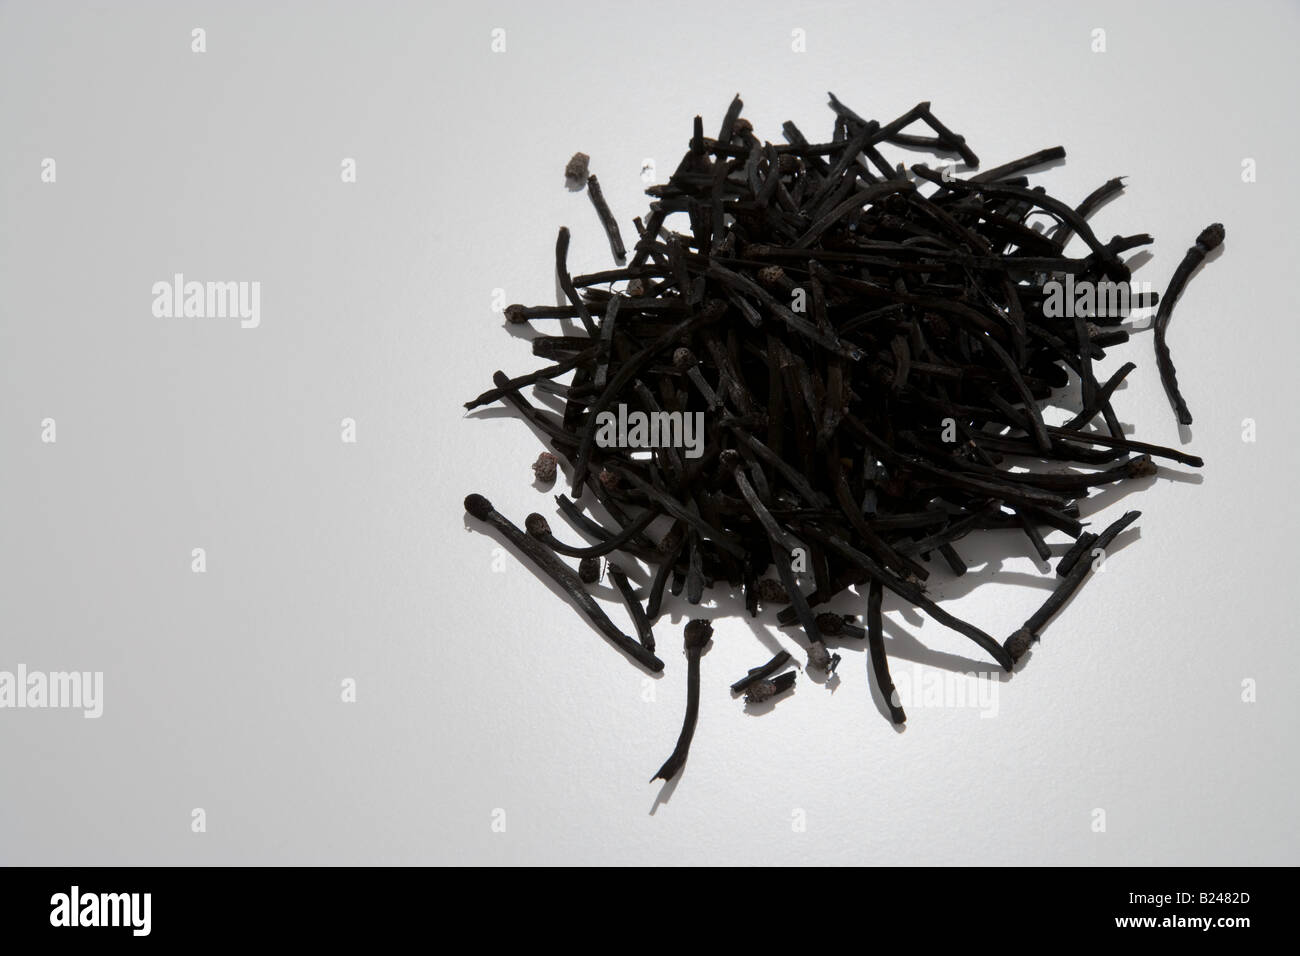 Stack of burnt matches - Stock Image